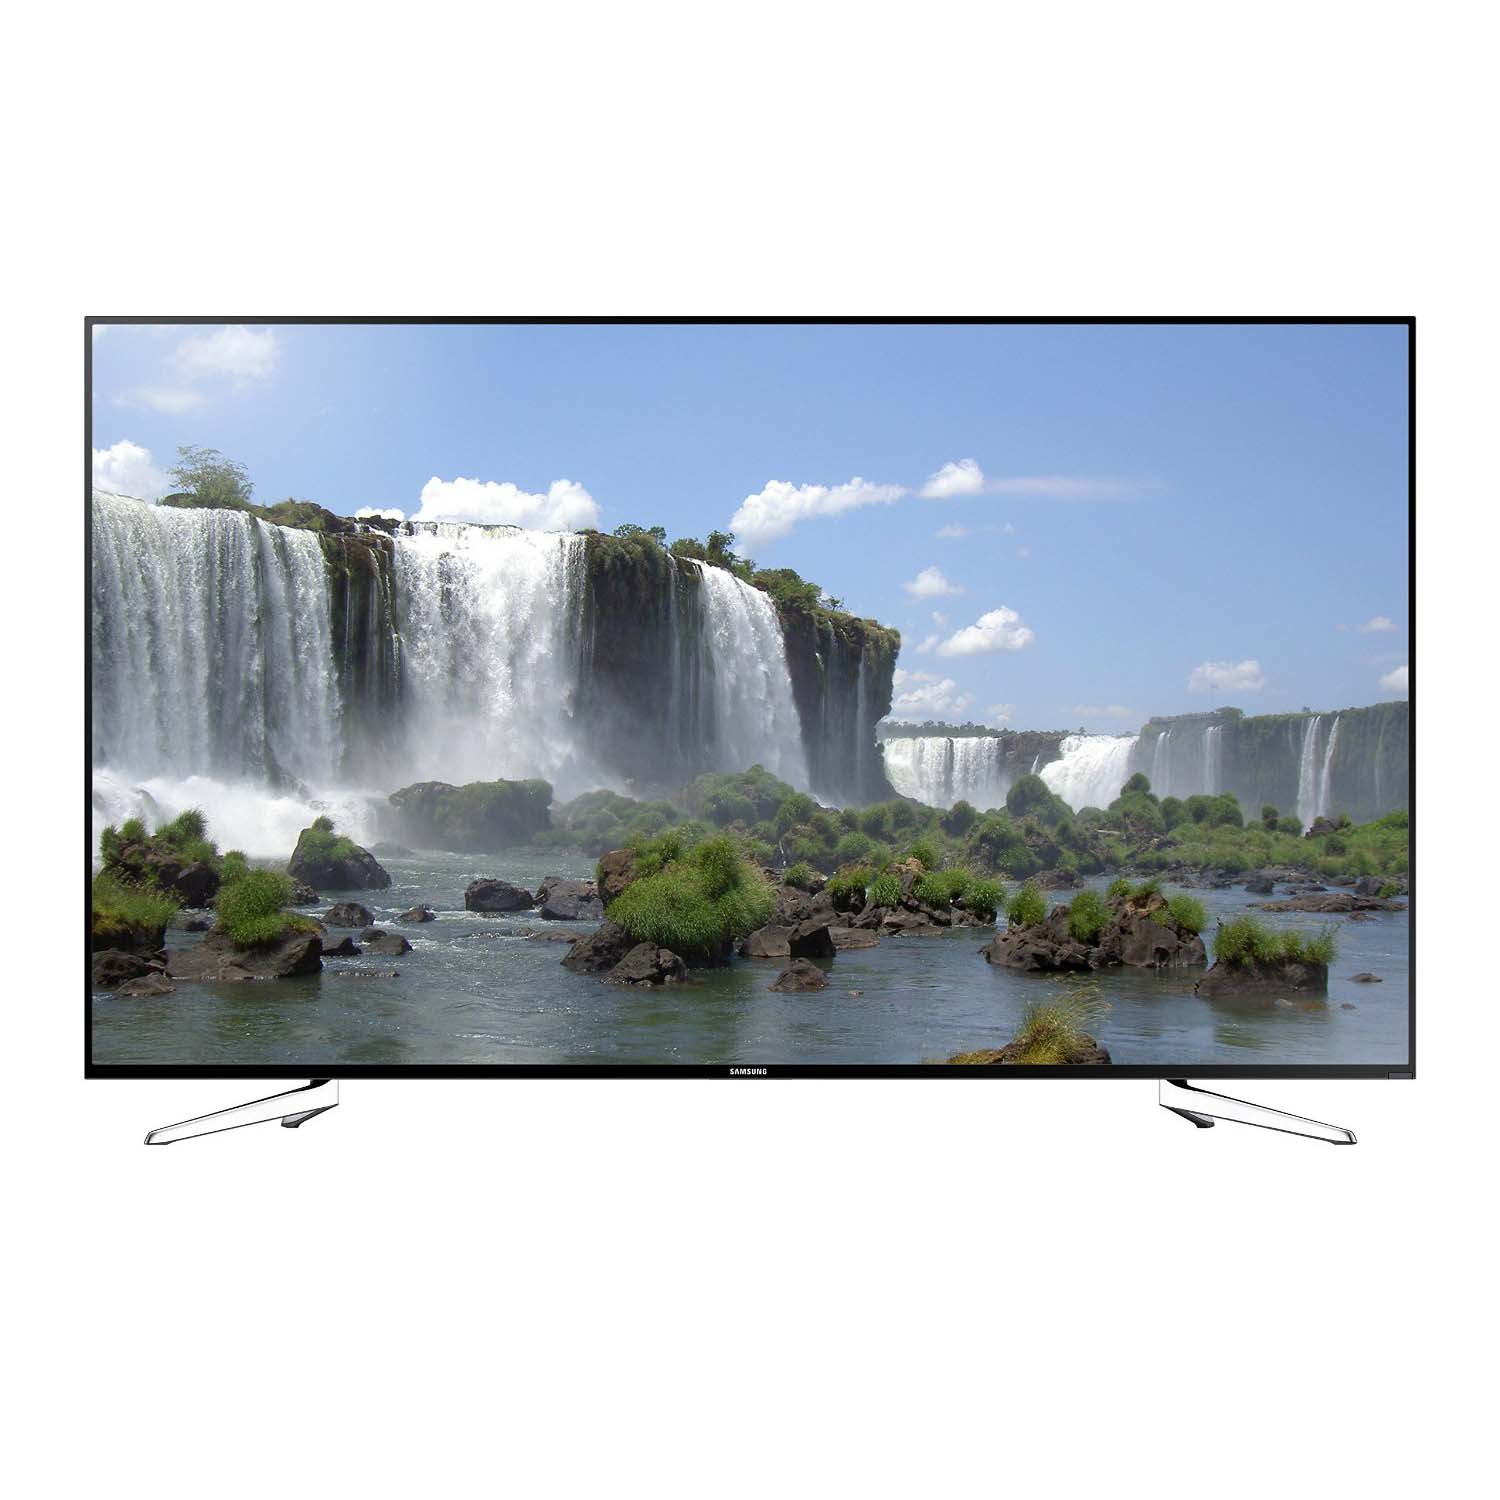 Samsung UN75J6300 75-Inch 1080p Smart LED TV (2015 Model) *관부가세 별도*